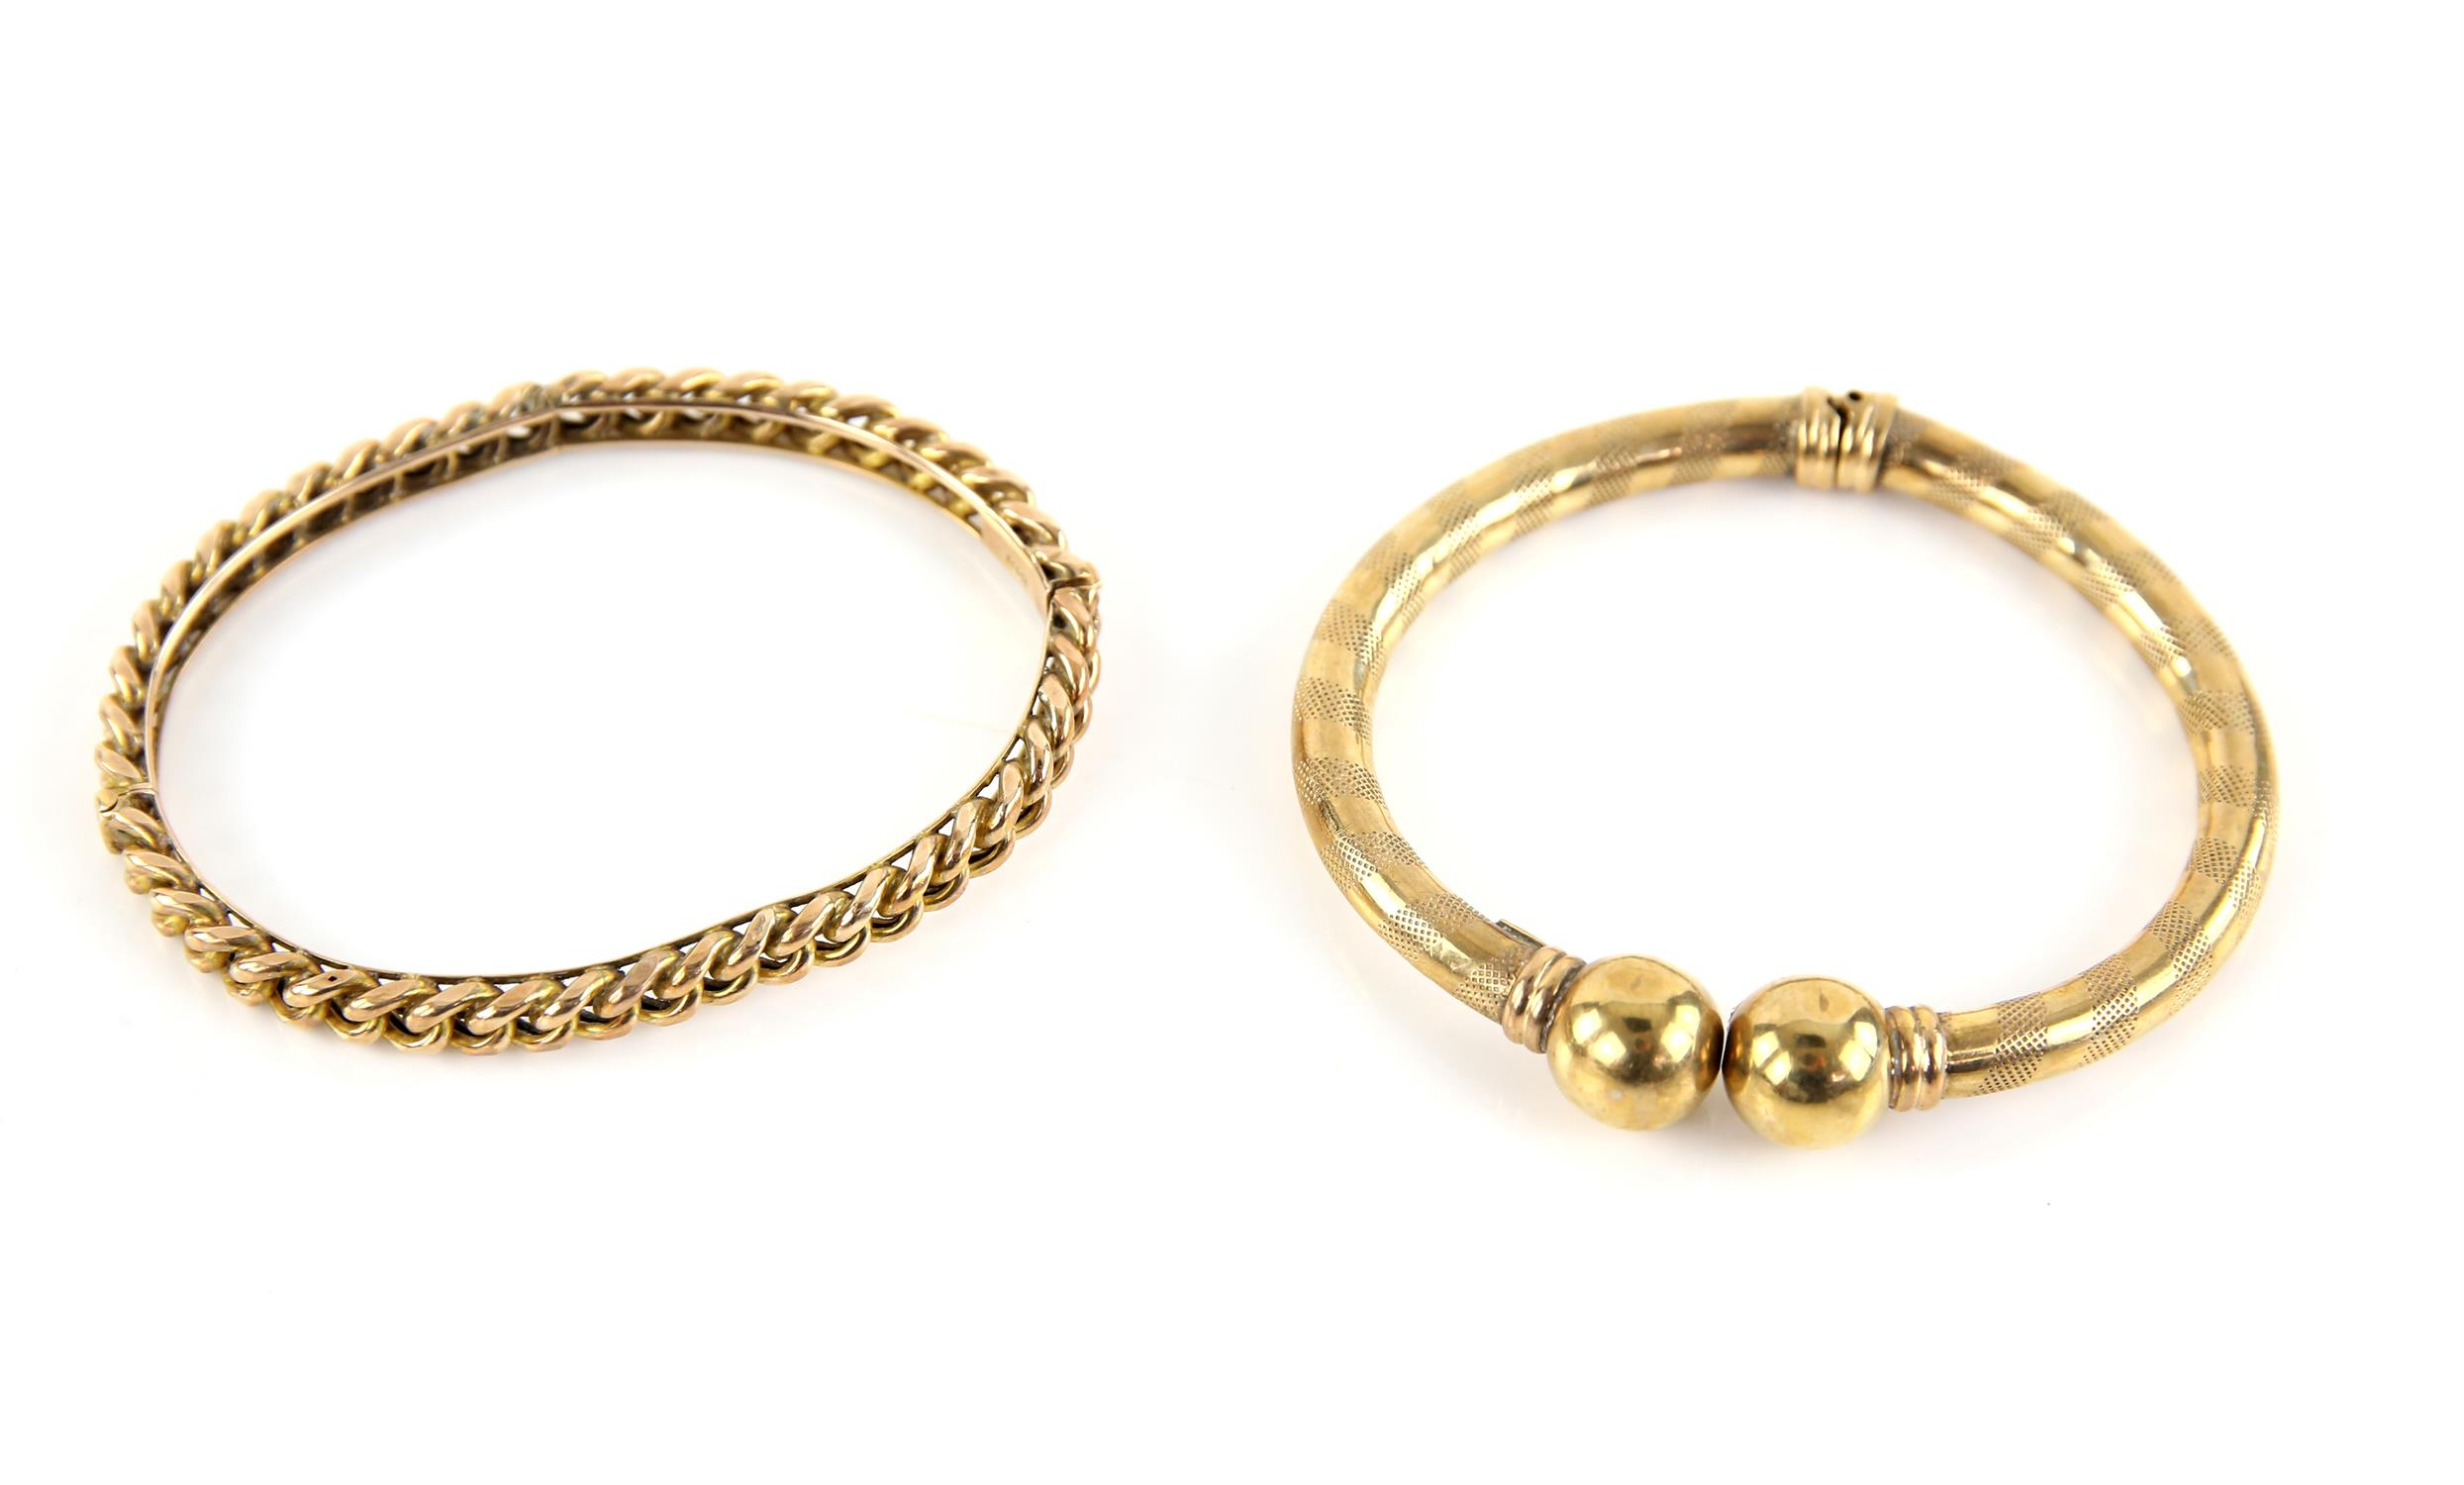 Curb link style hinged bangle, stamped 10 ct, inside diameter 63 x 47mm, together with a broken